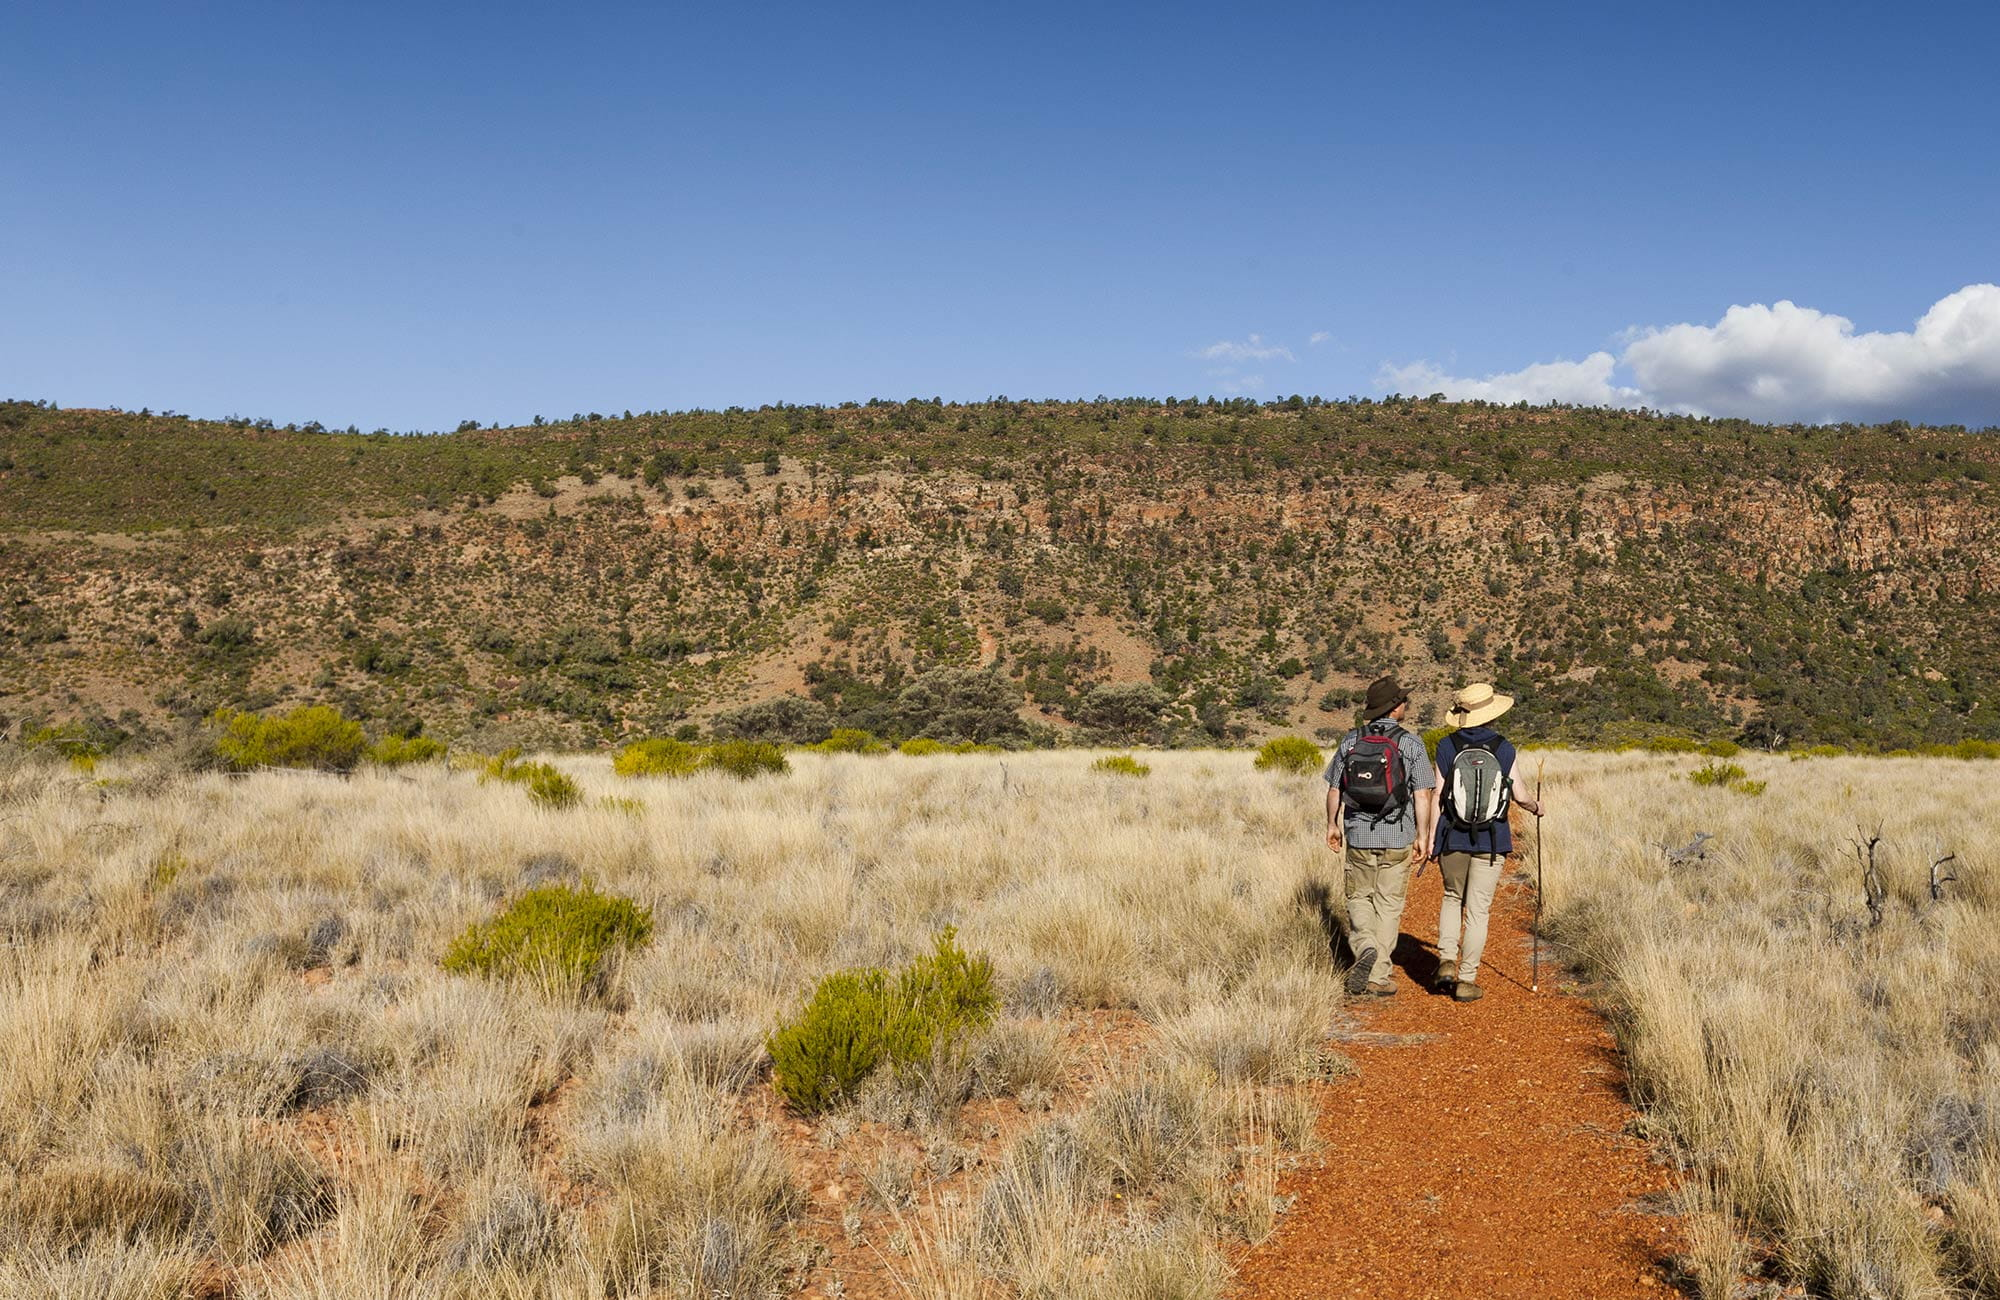 Valley of the Eagles walk, Gundabooka National Park. Photo: David Finnegan